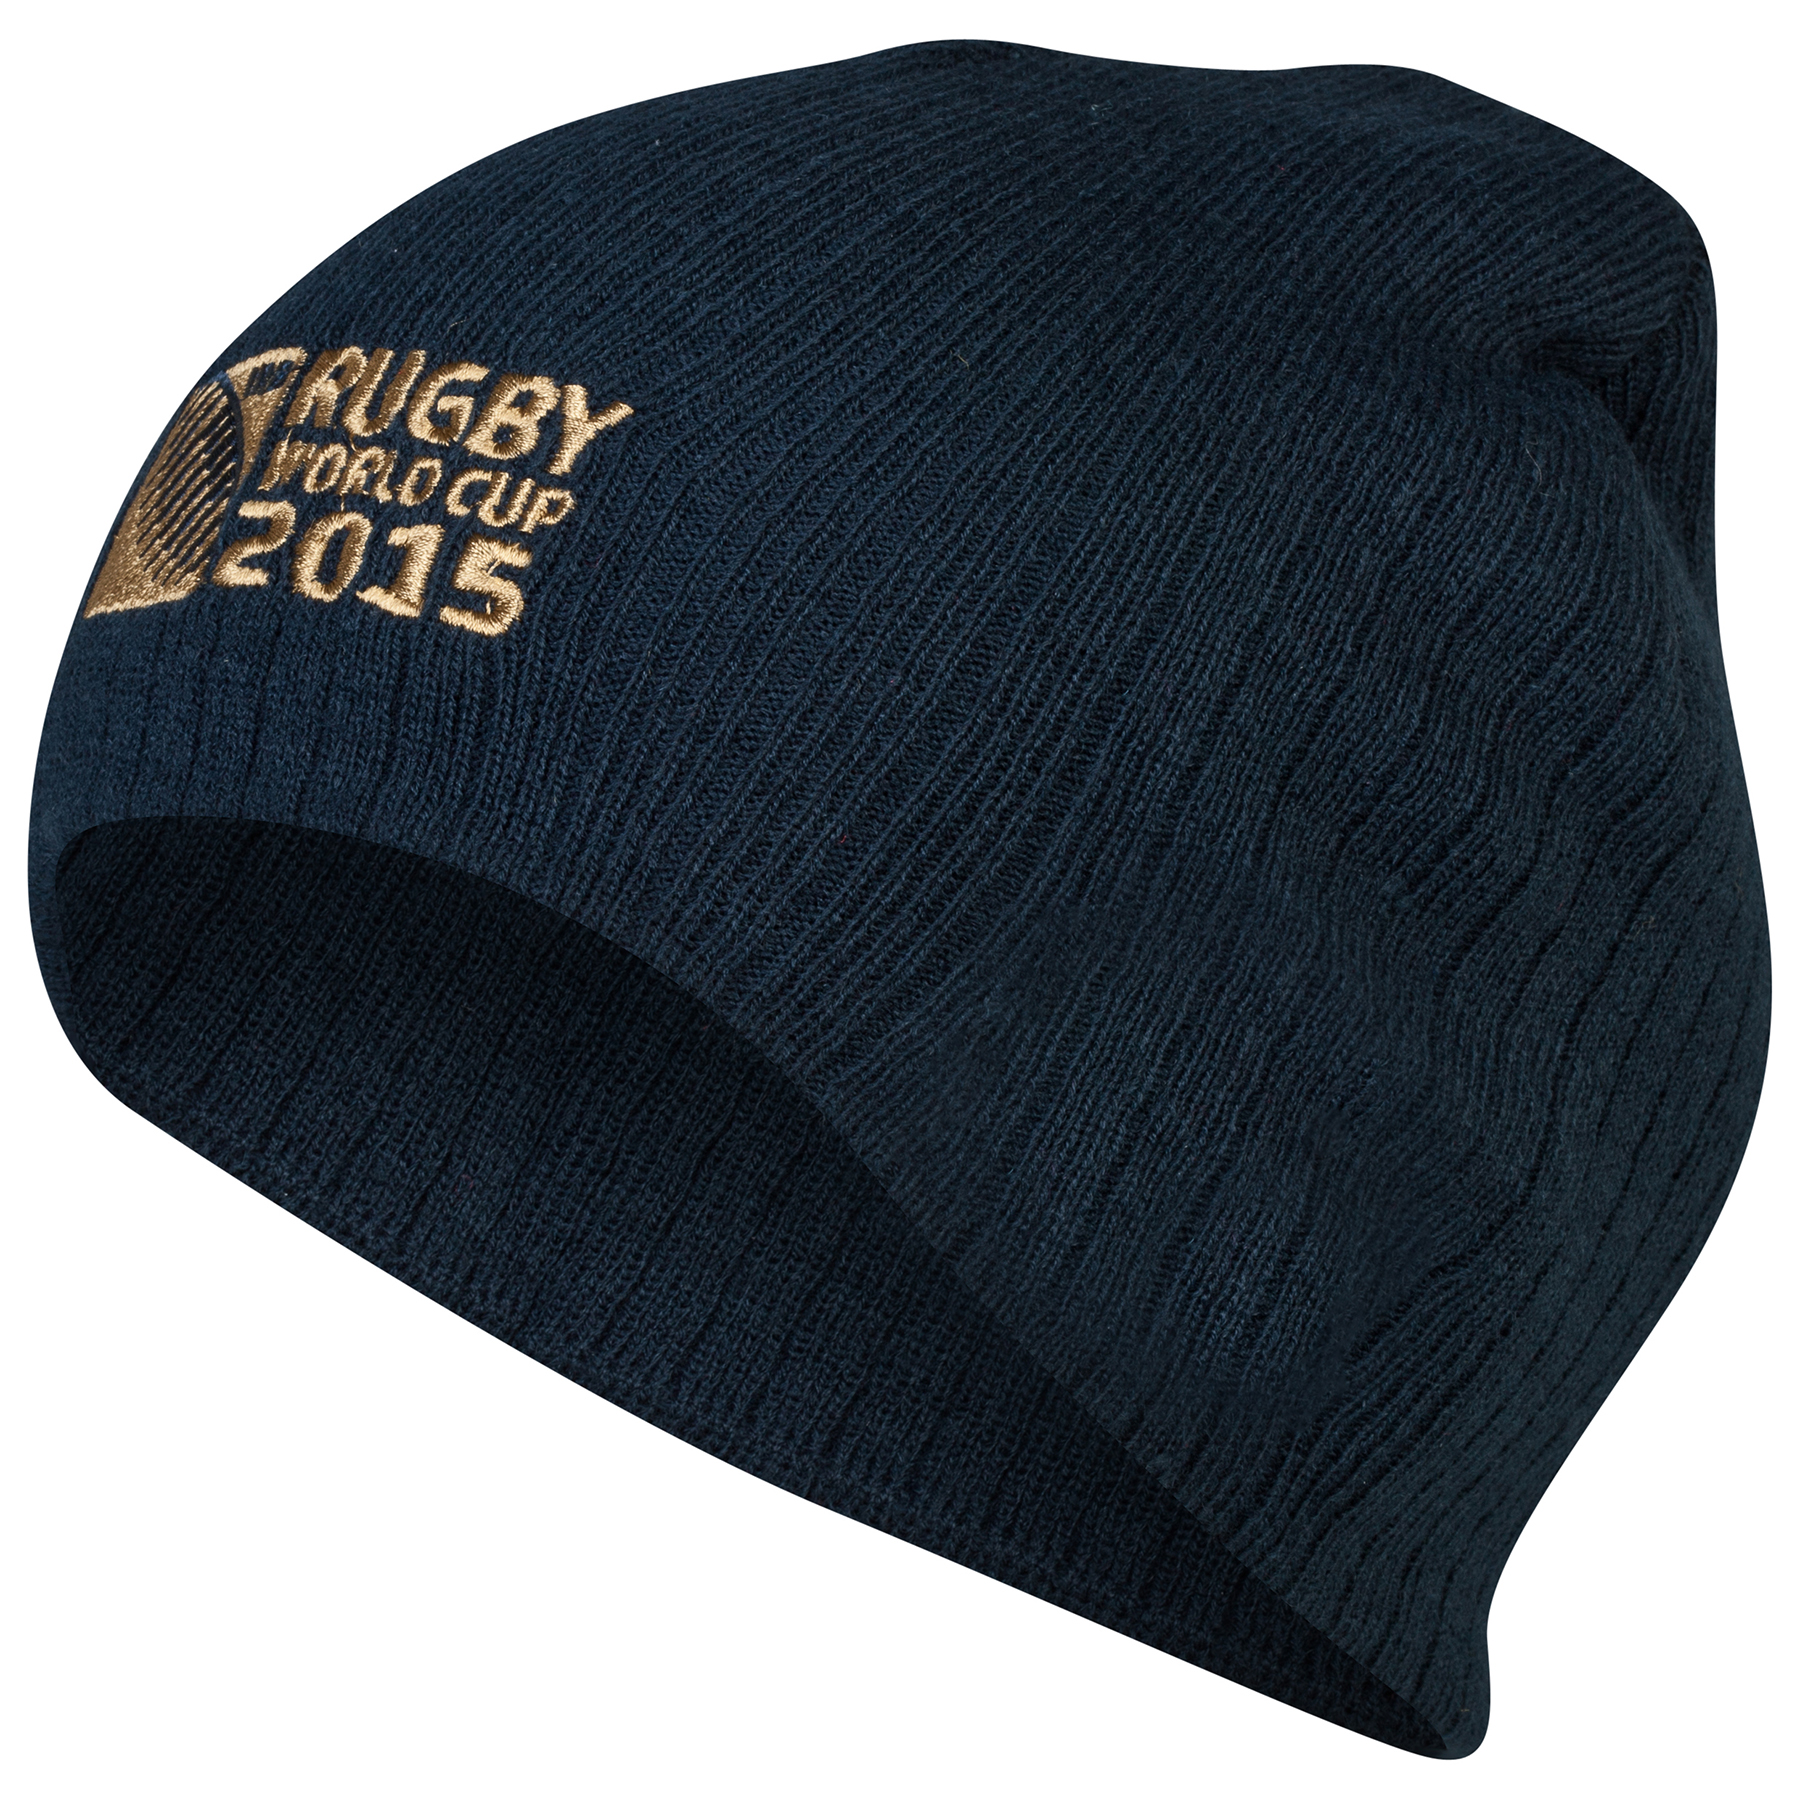 Canterbury Rugby World Cup Webb Ellis Cup Beanie Navy